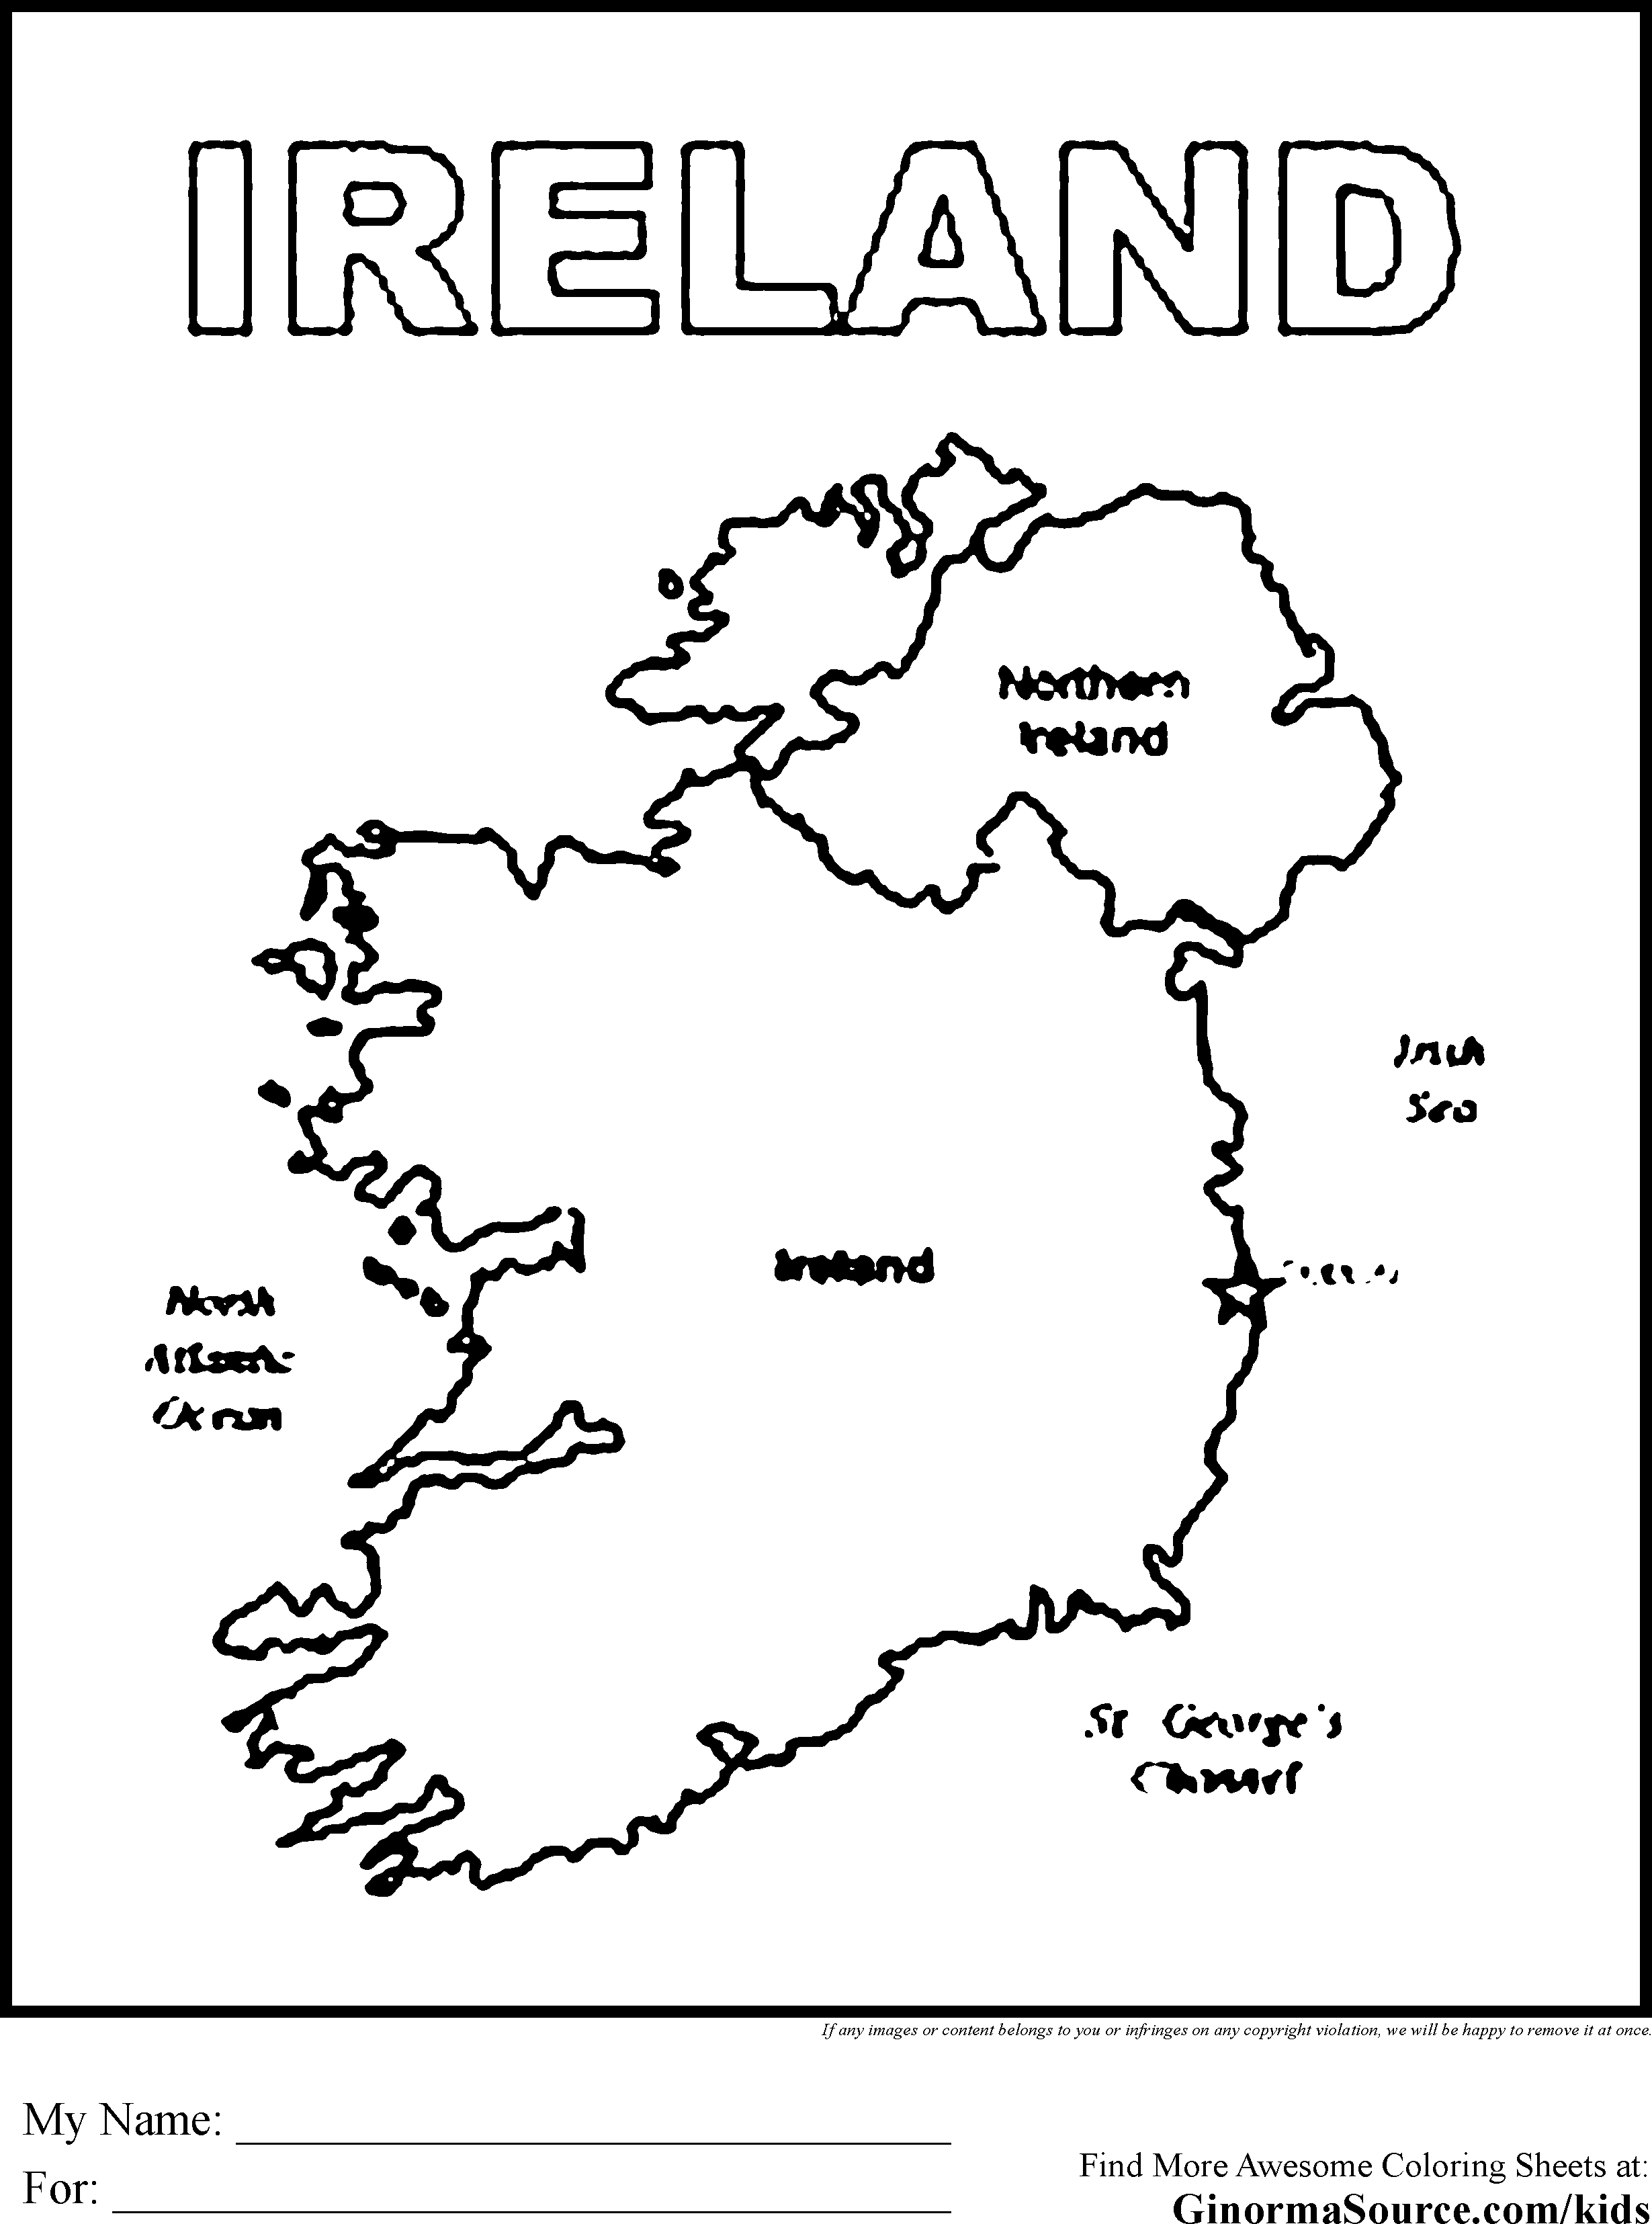 Ireland Coloring Pages Ireland Pinterest Ireland And Social